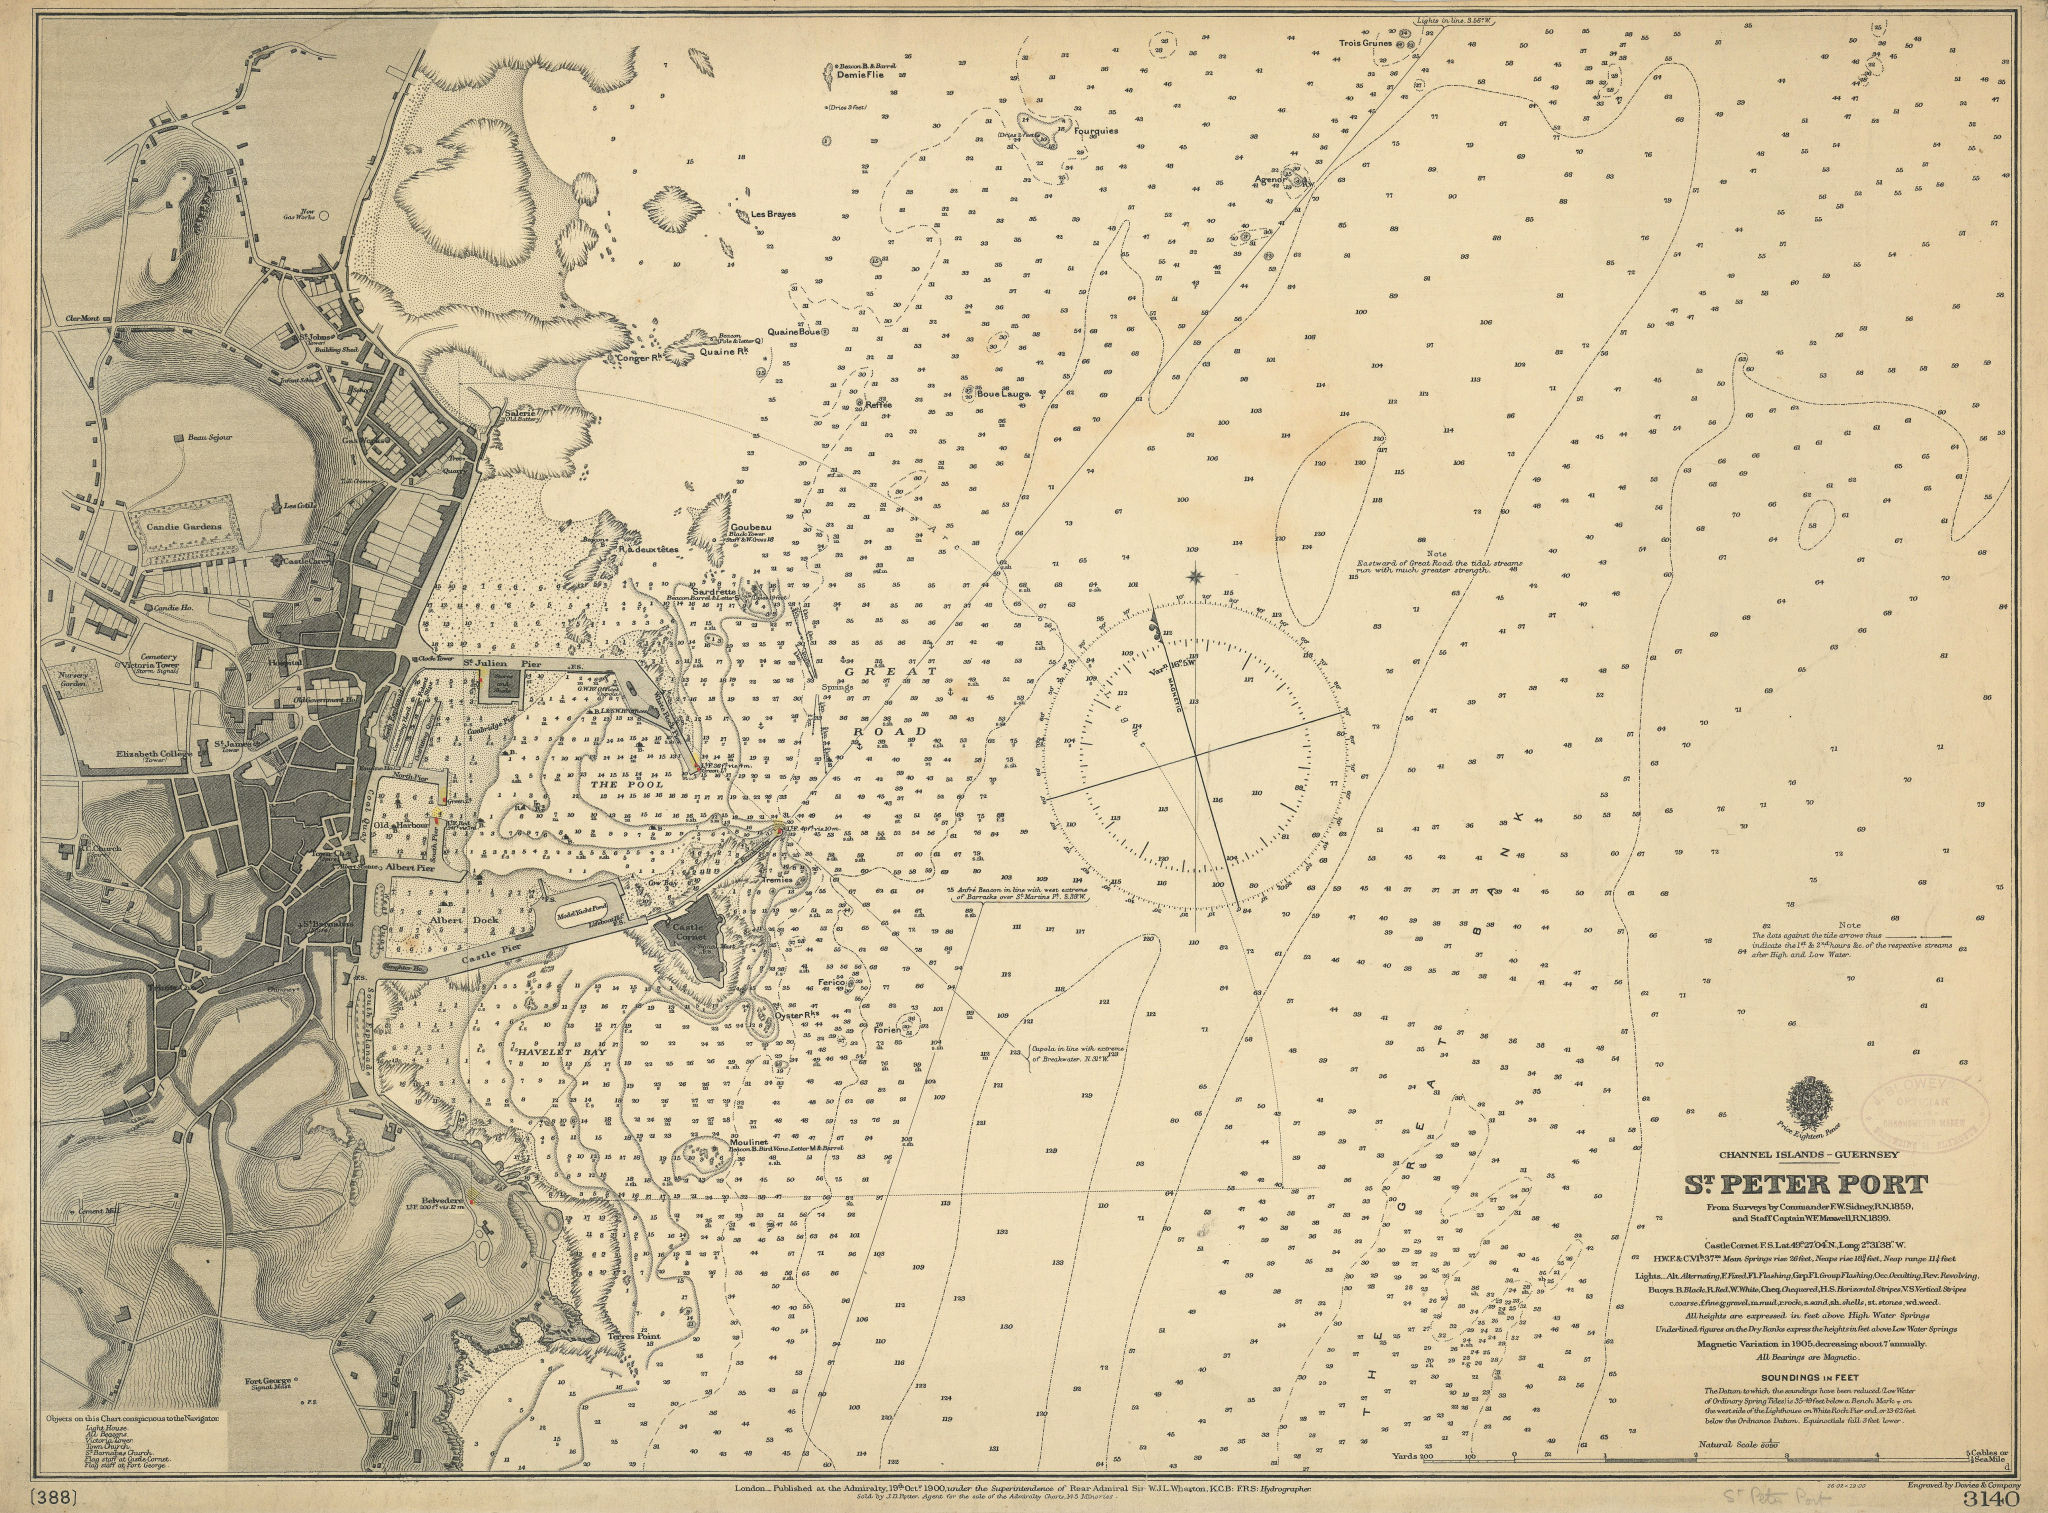 St. Peter Port, Guernsey, Channel Islands. ADMIRALTY sea chart 1900 old map